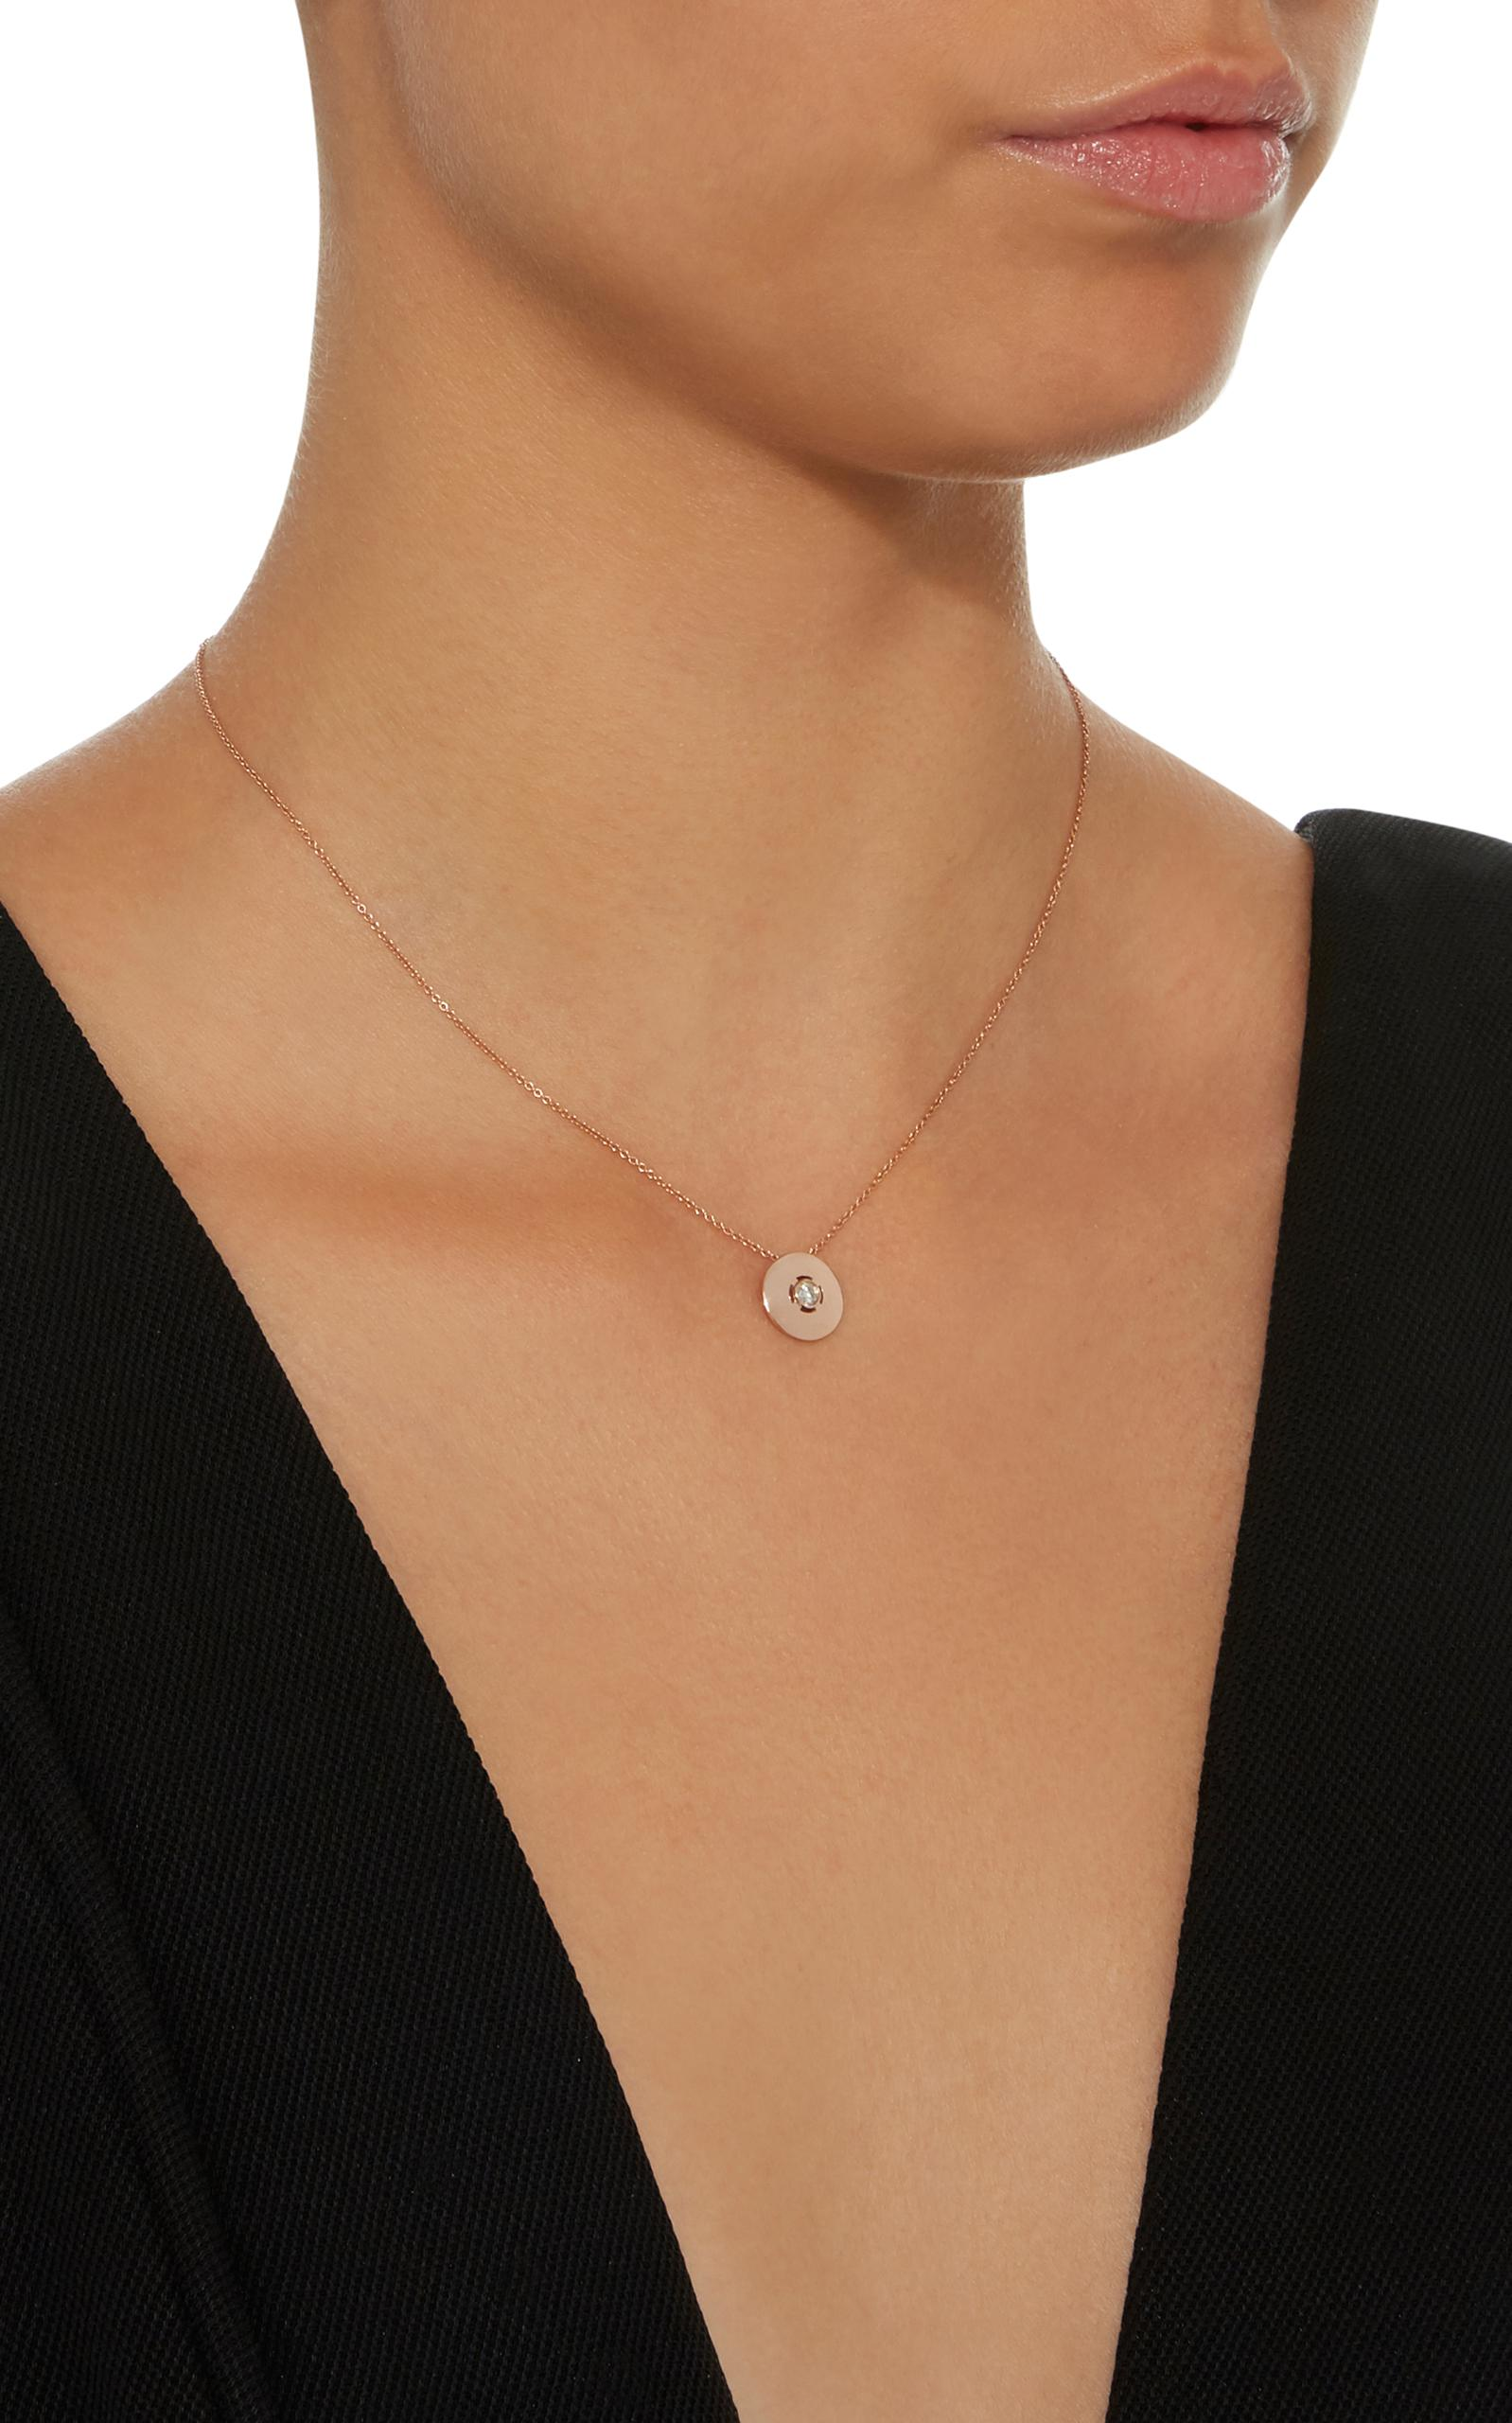 Carbon & Hyde Discus 18k Rose Gold Diamond Necklace in White